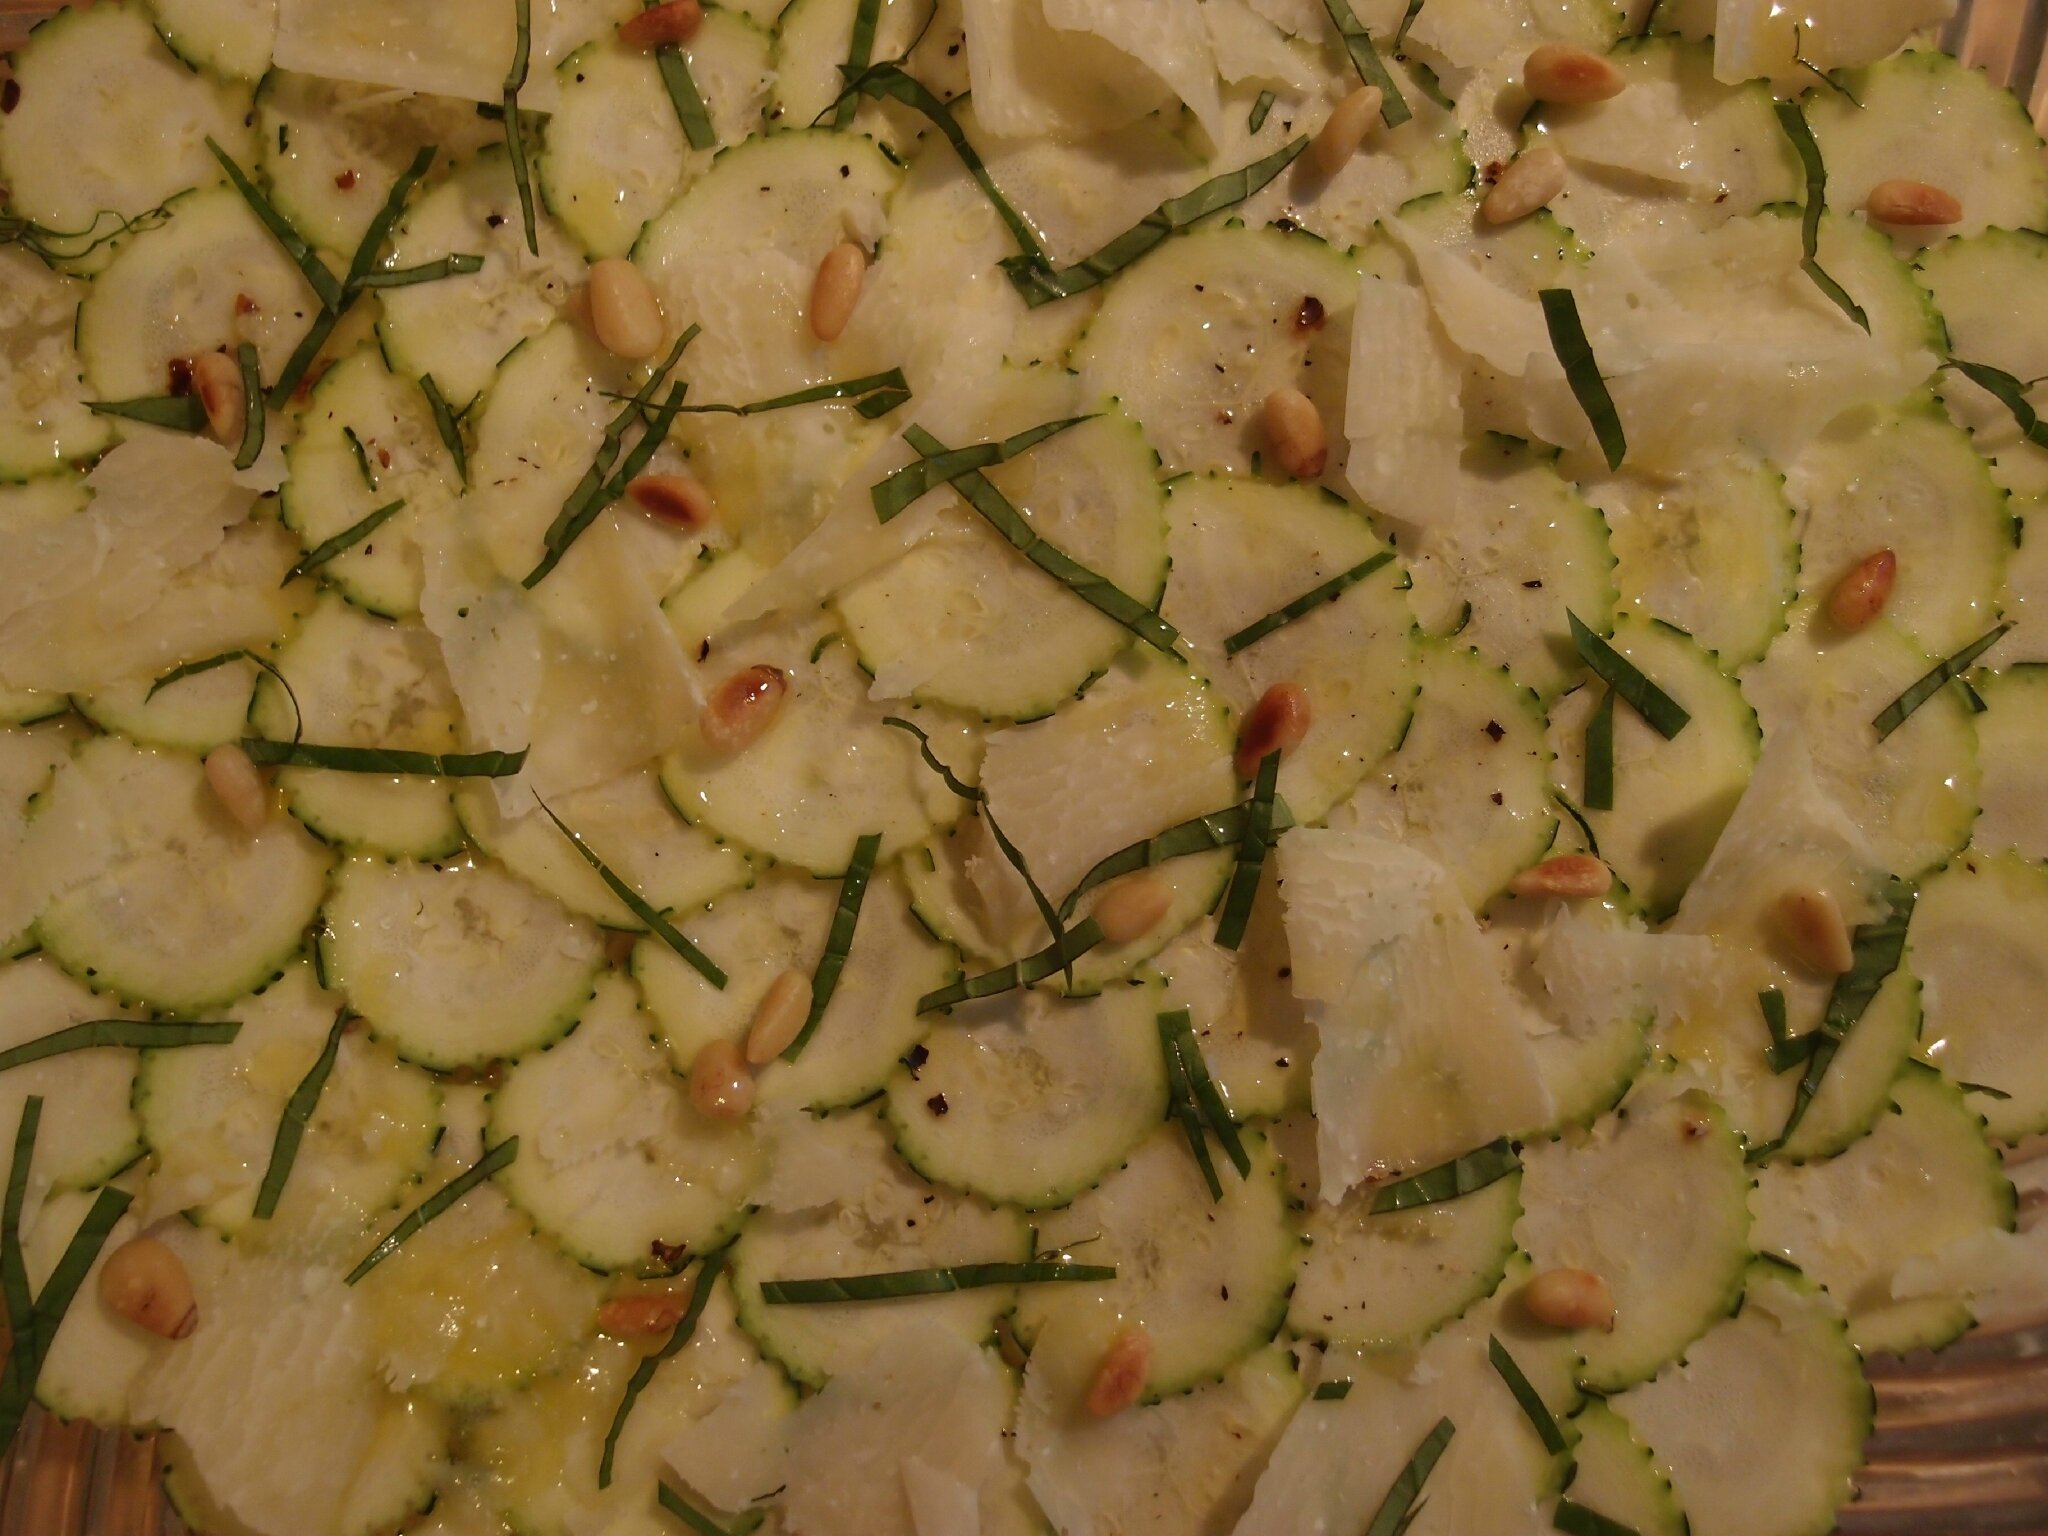 Carpaccio de courgettes pignons parmesan yza foodista for Entree vite faite simple